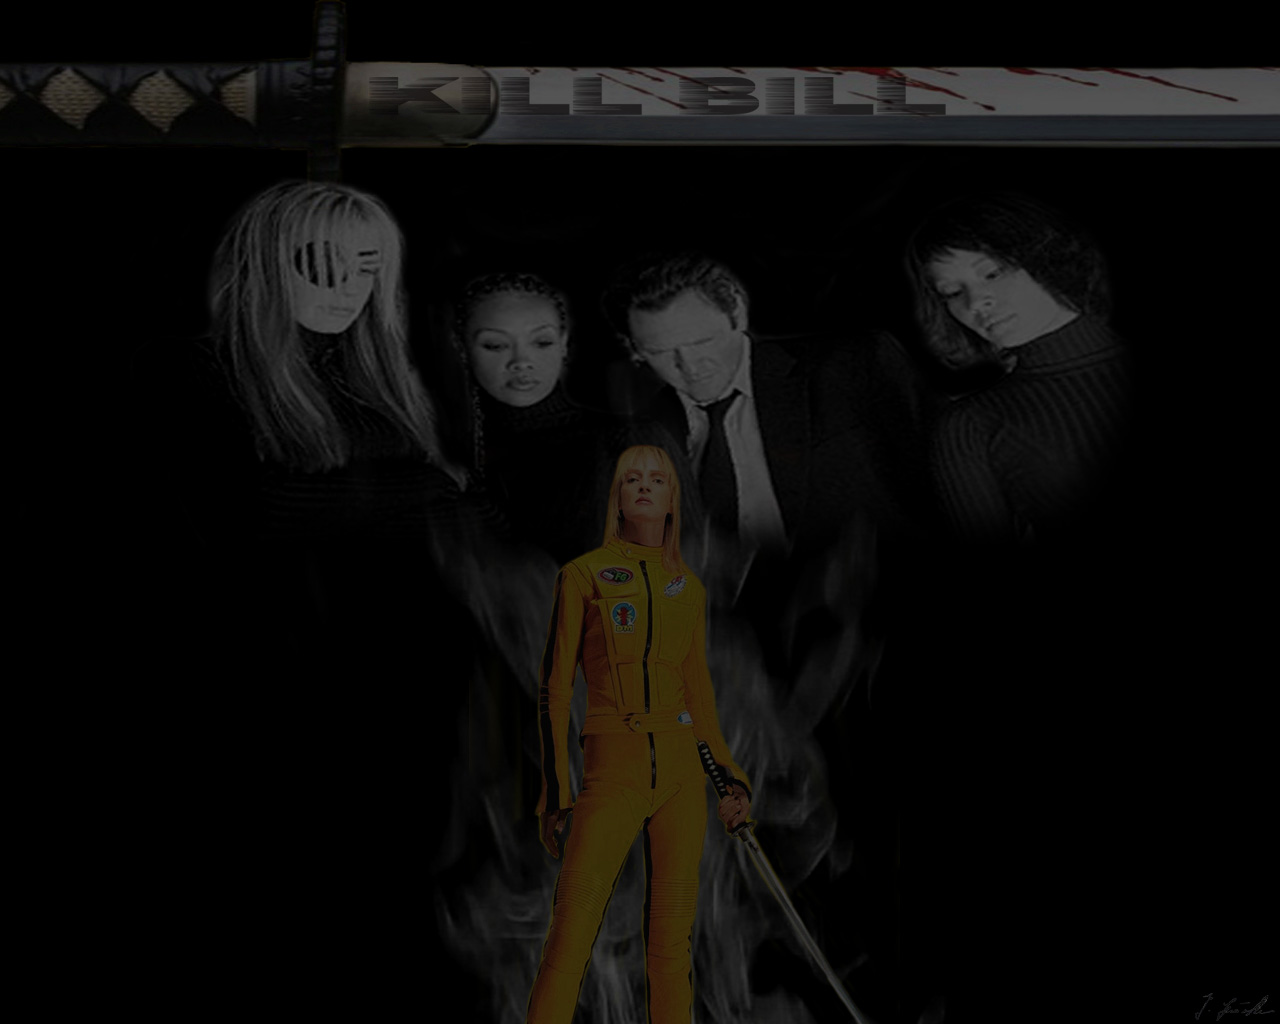 download movie killbill wallpaper - photo #17